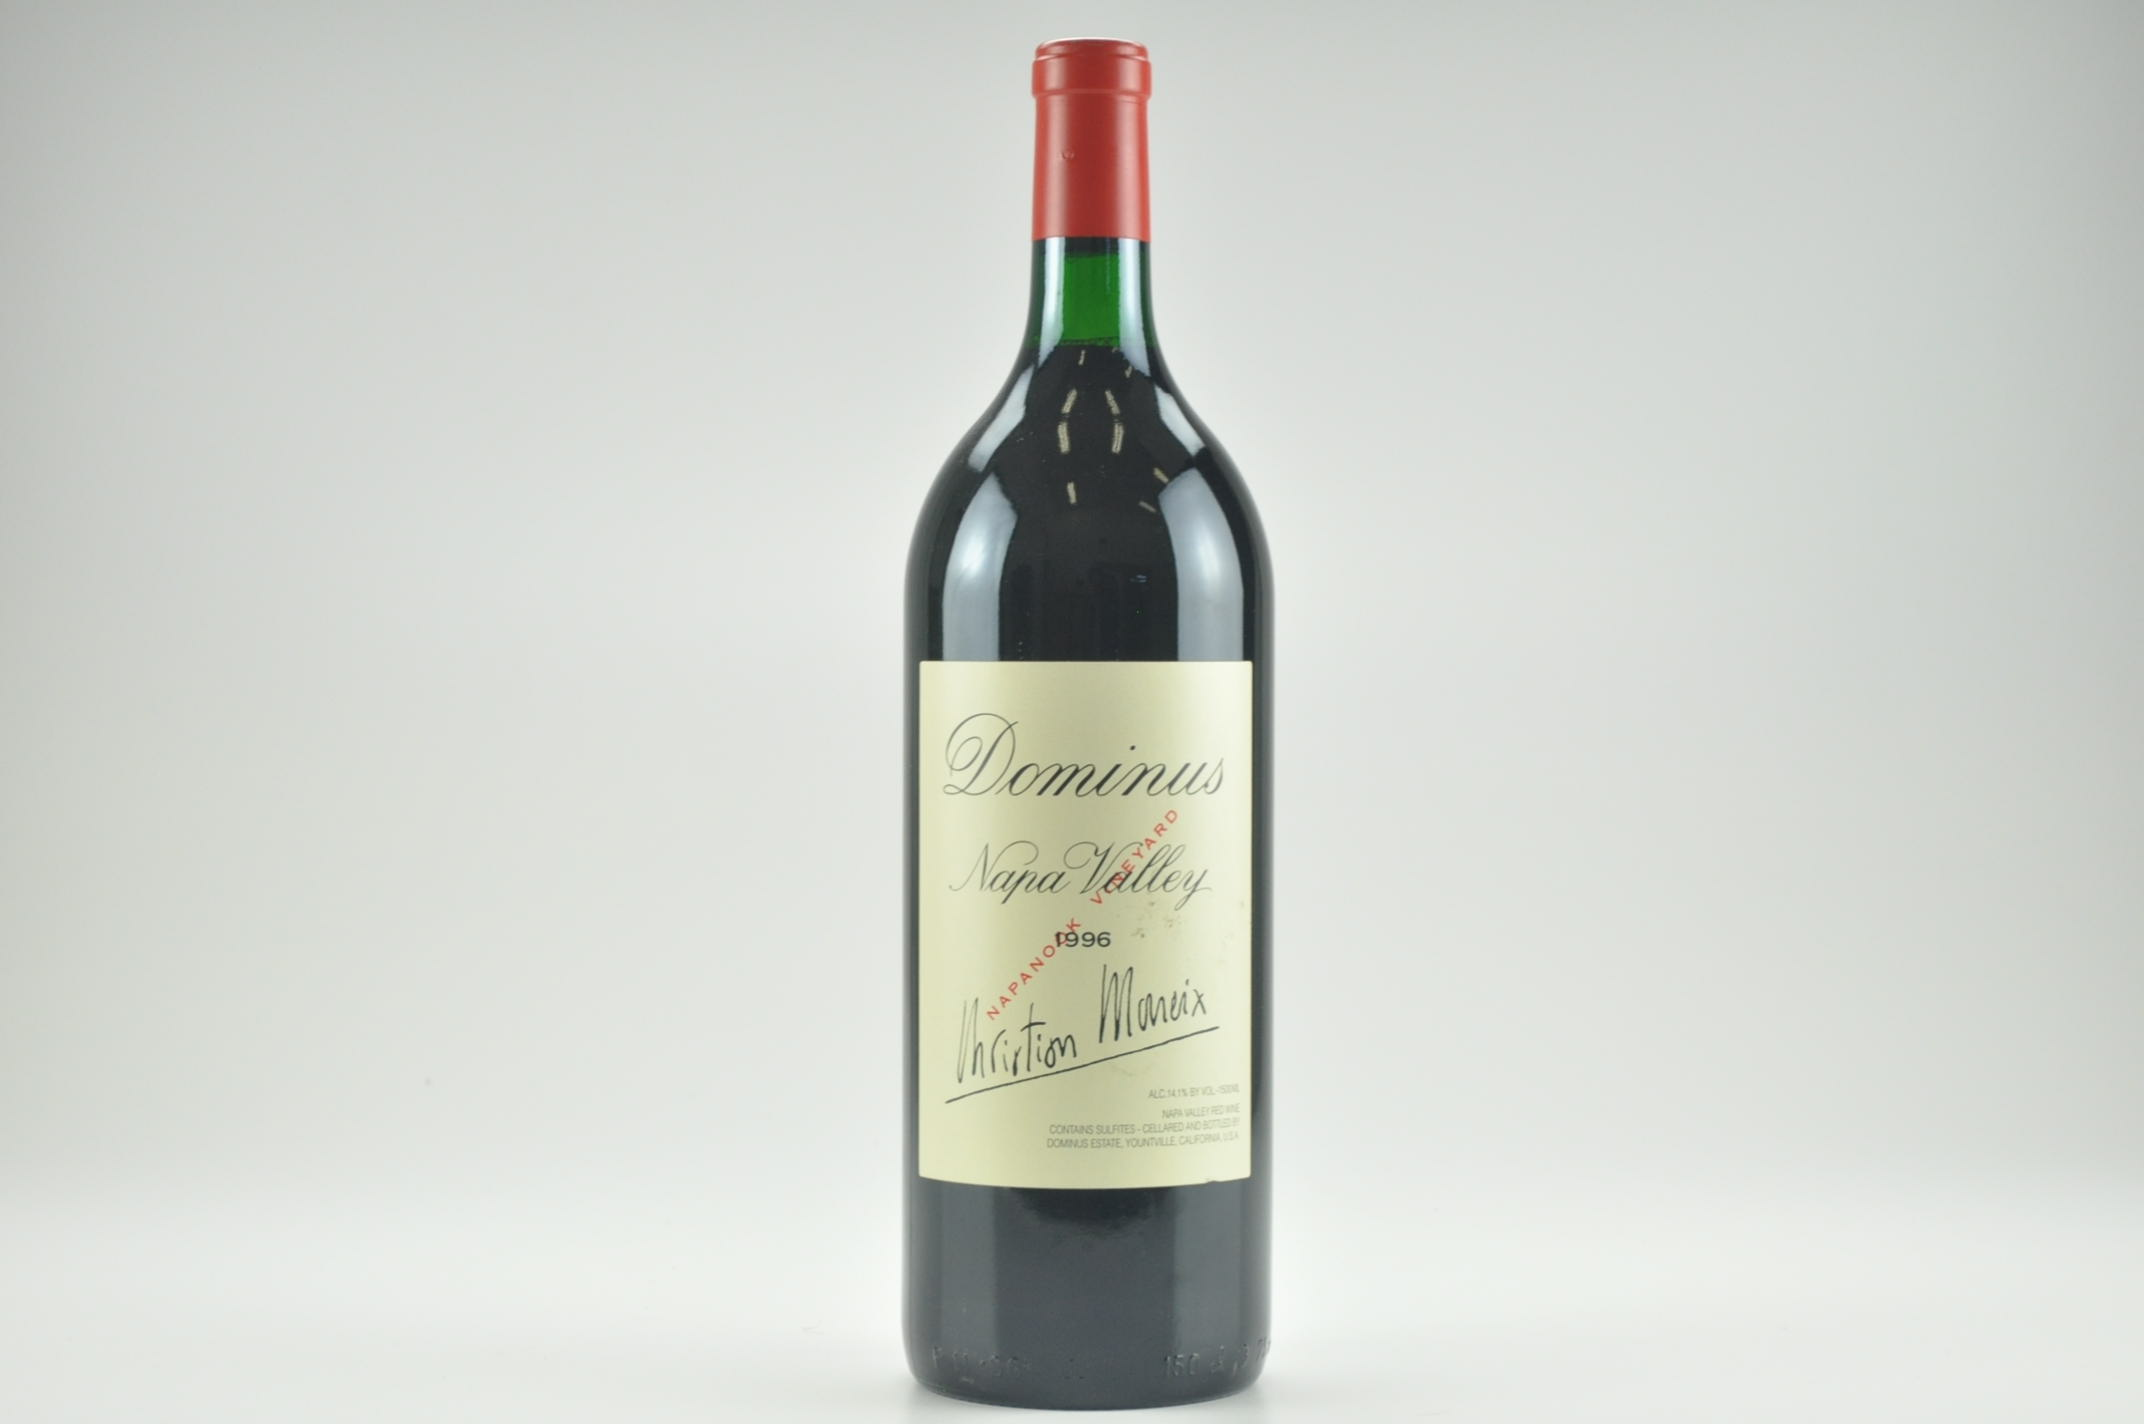 1996 Dominus Proprietary Red Wine 1.5 L, Napa Valley RP--95